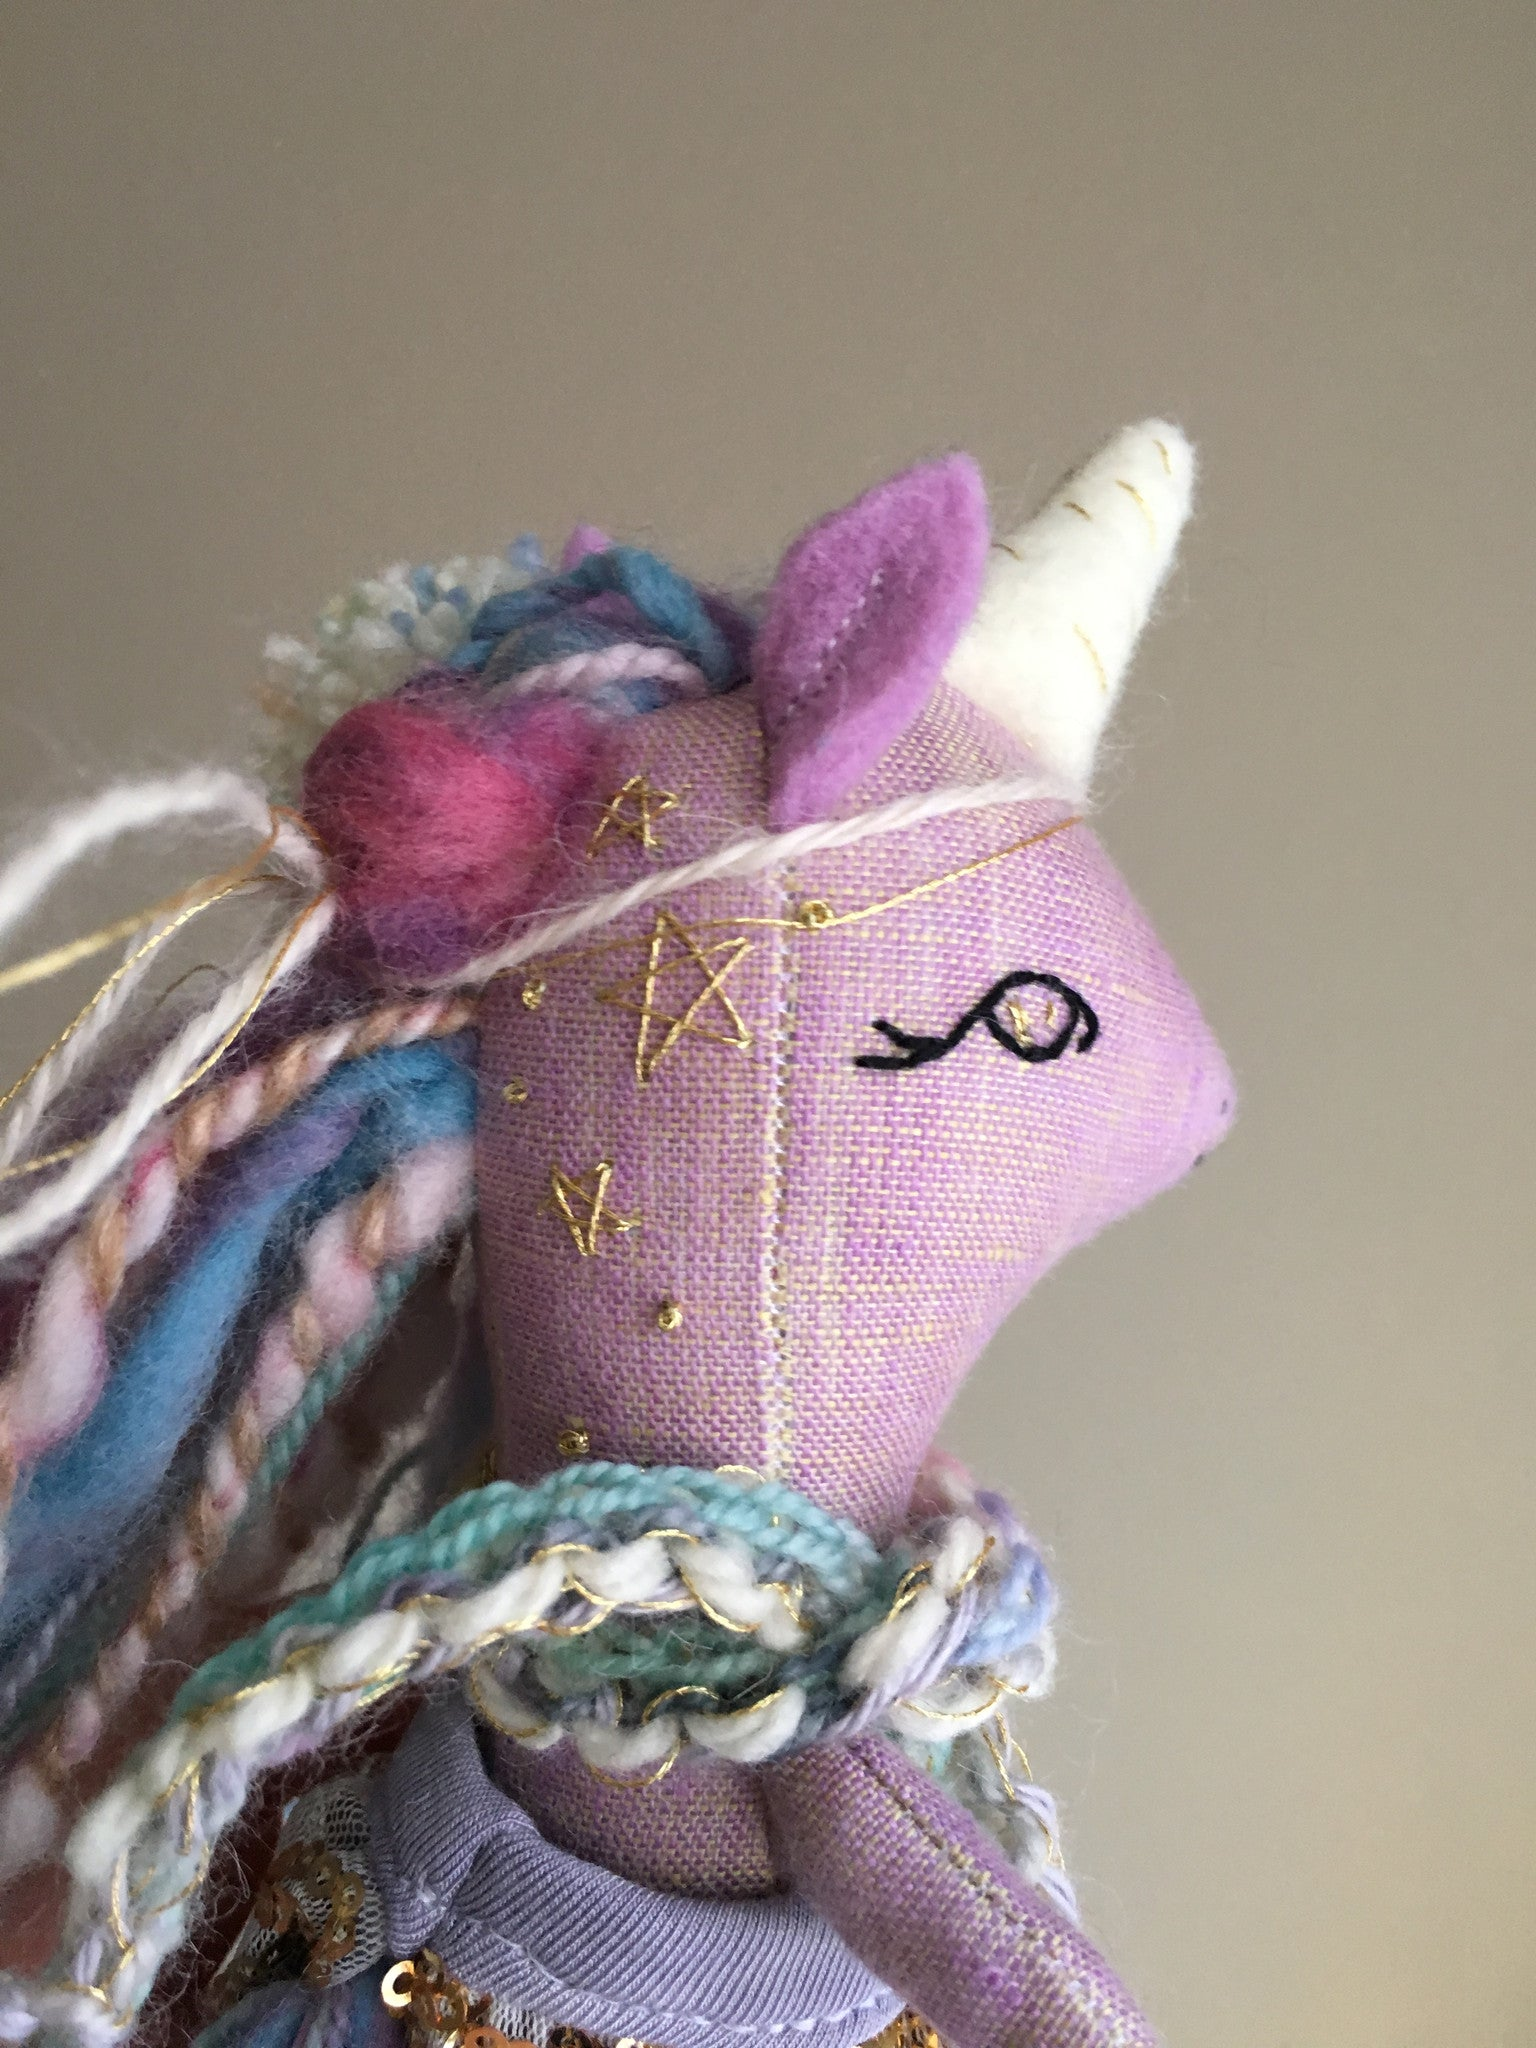 Reserved Unicorn Doll - Purple Colorful with Stars - Mini Heirloom Cloth Doll - about 6.75 inches tall